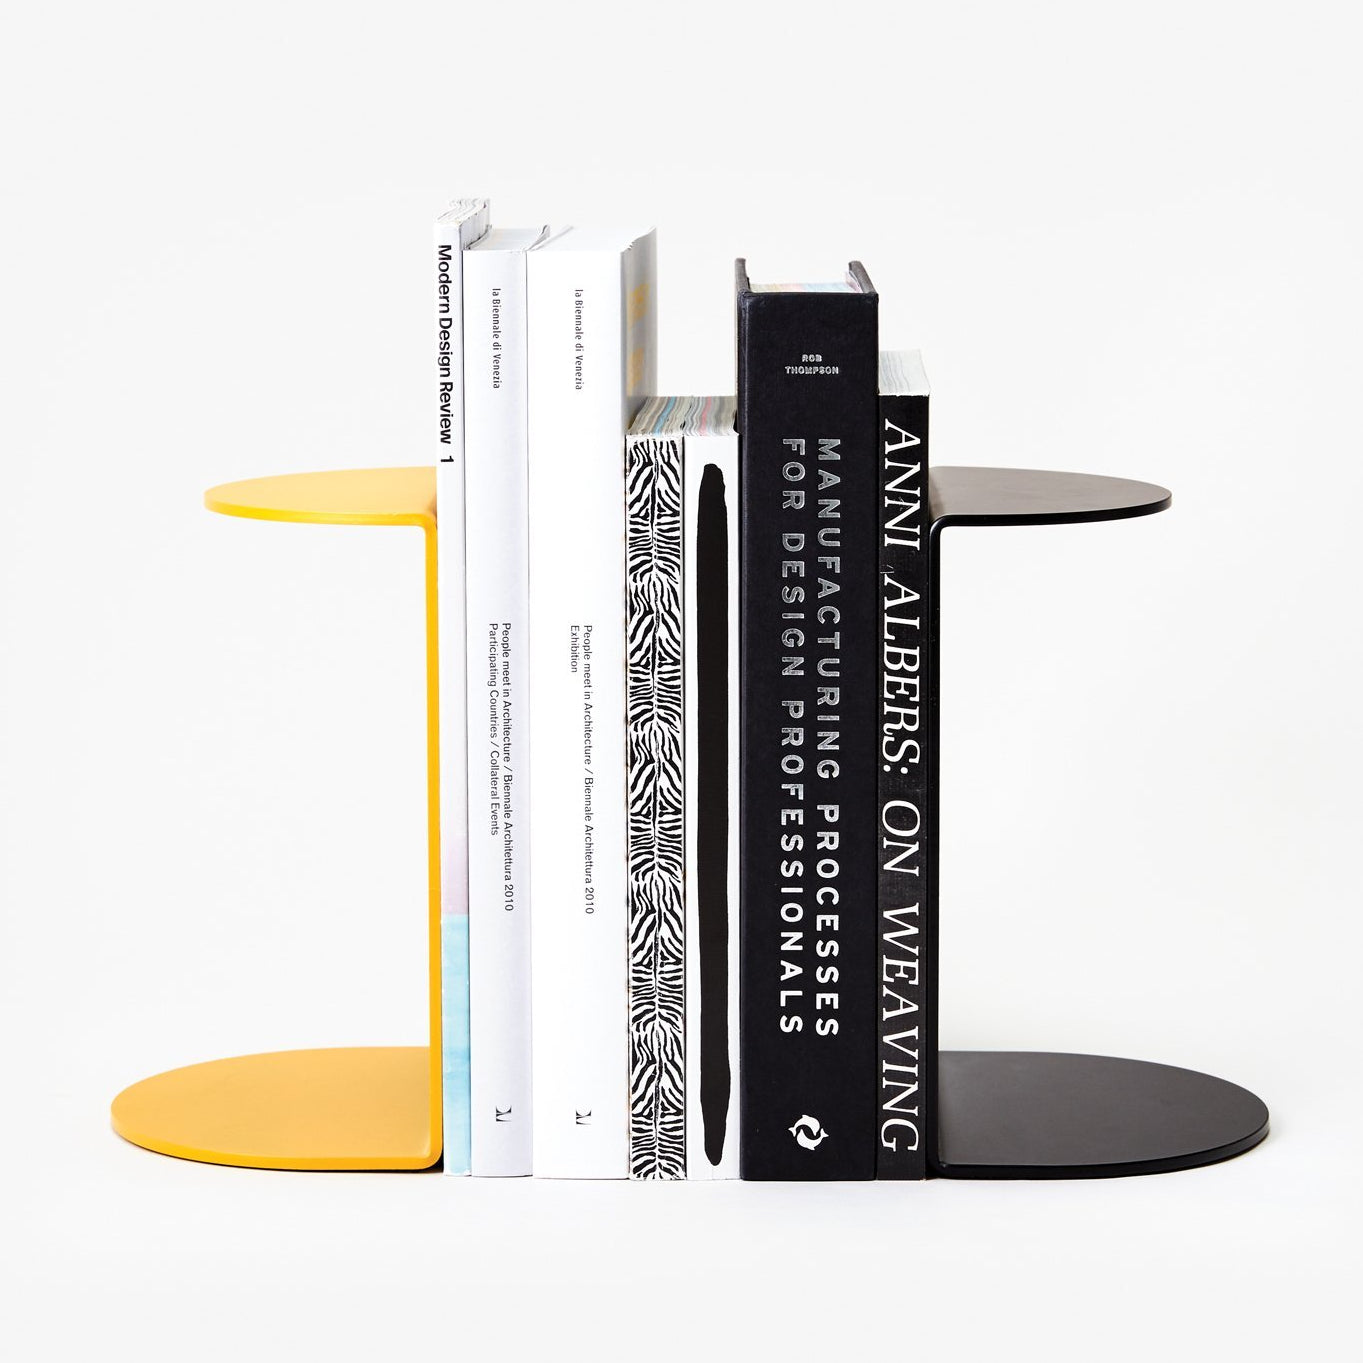 Areaware Reference Bookend Black Powder Coated Iron by Henry Julier